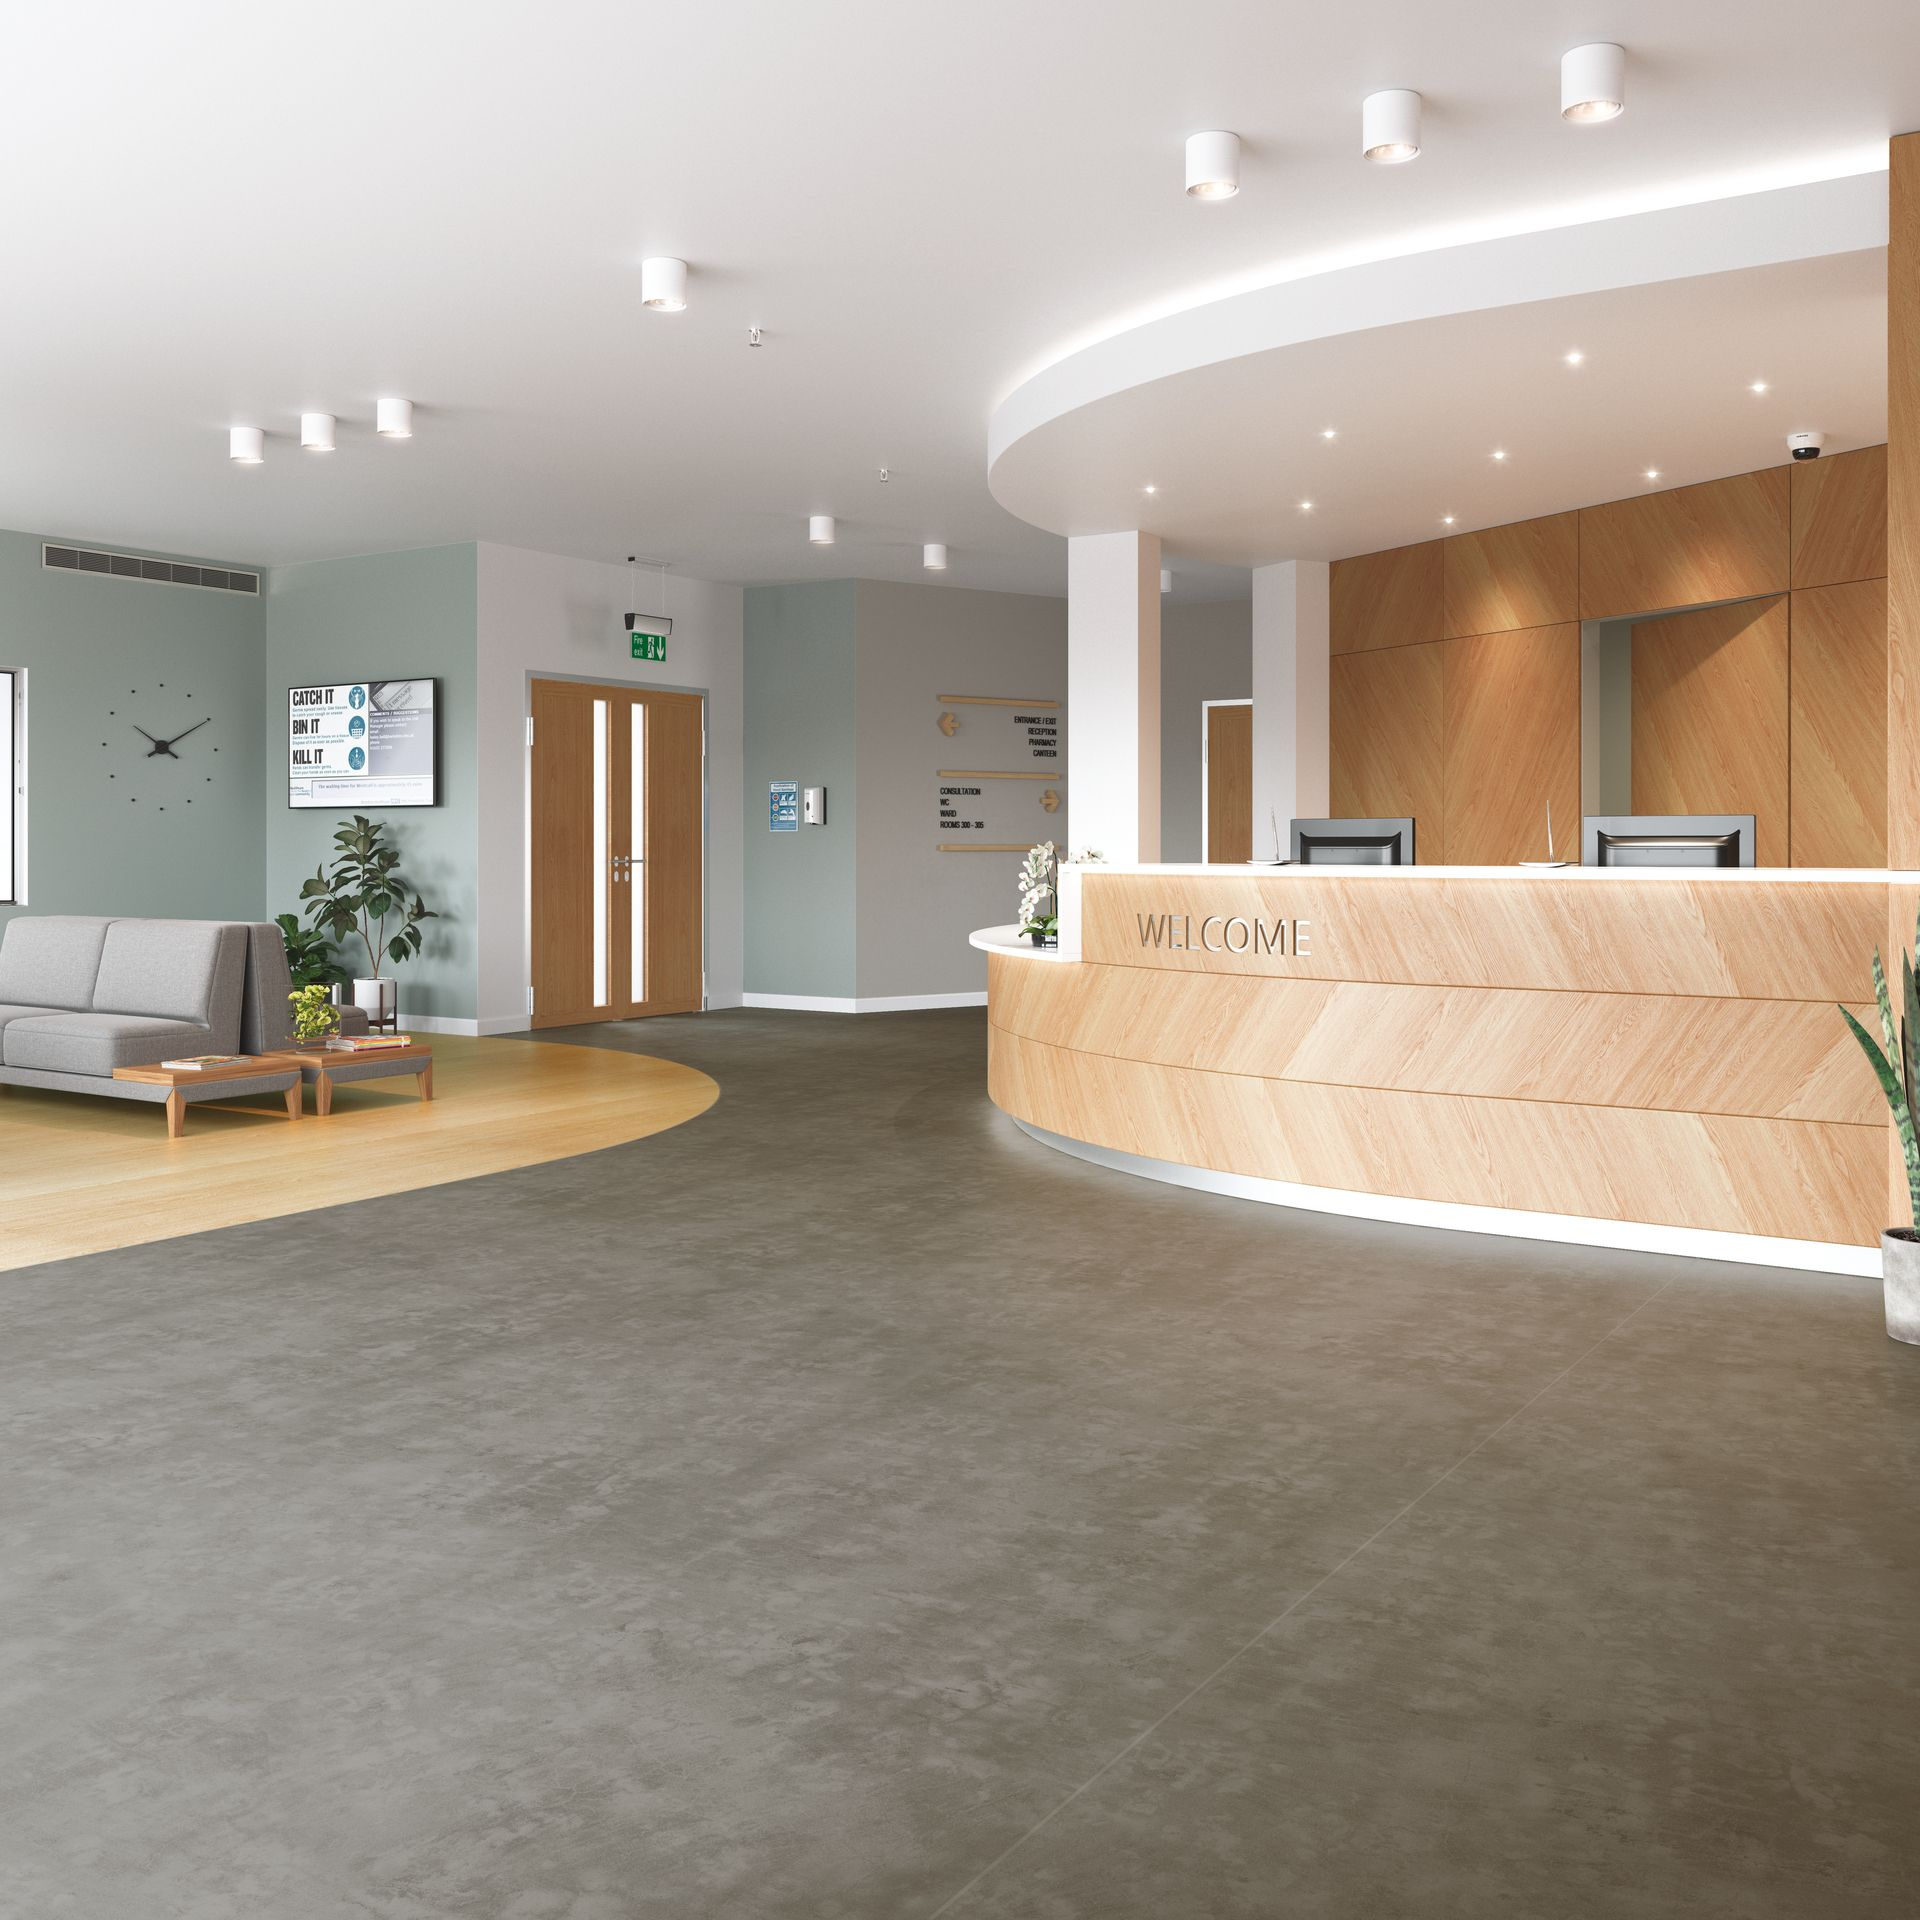 Polysafe Stone fx Safety Flooring